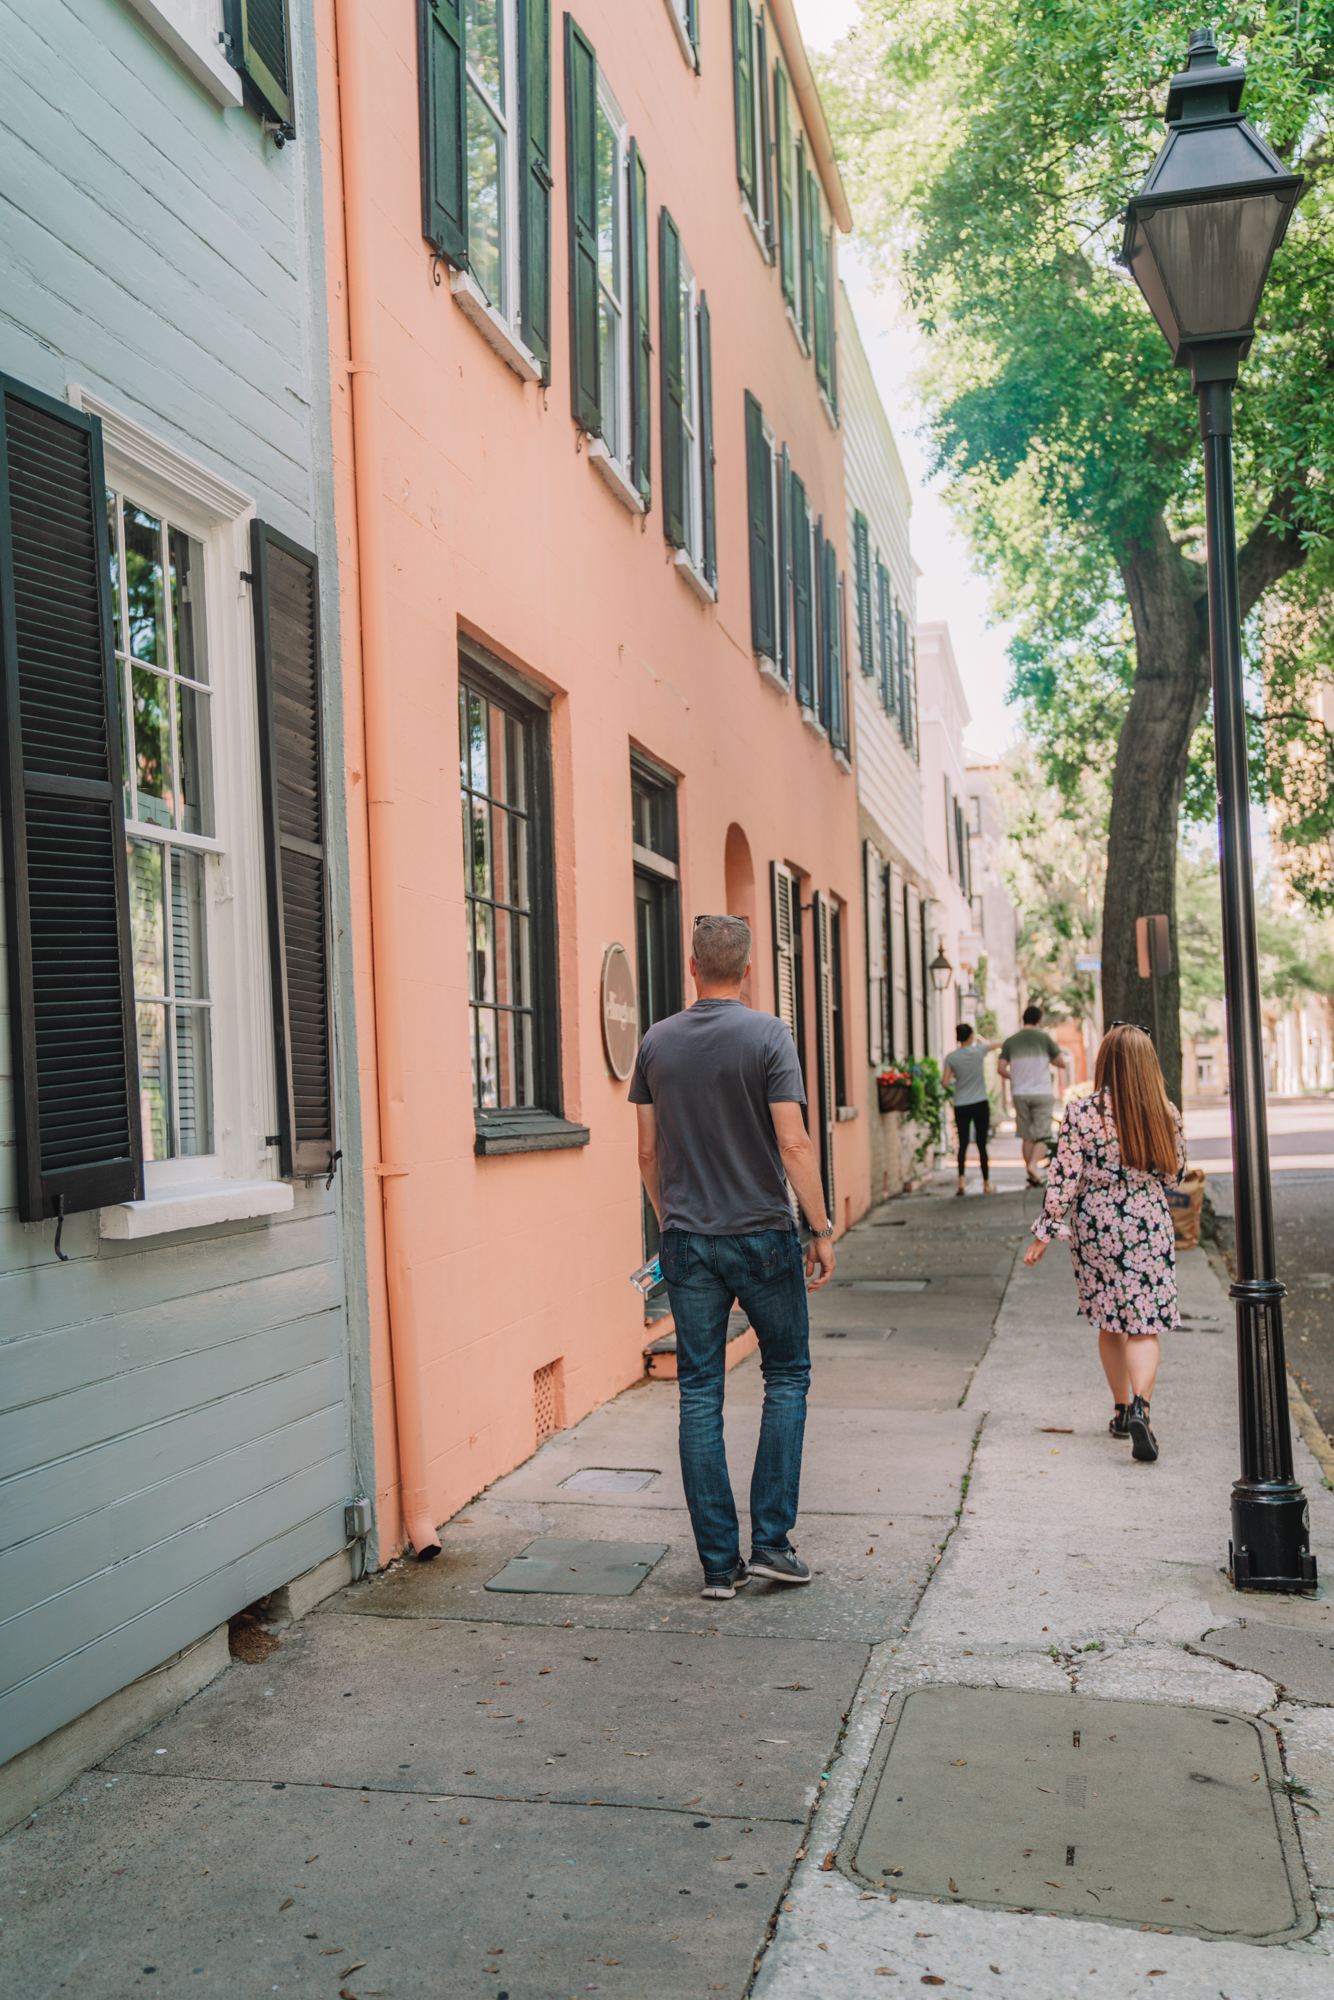 charleston sc visitors guide - a man and a women walk in front of the brightly colored souther houses in Charleston